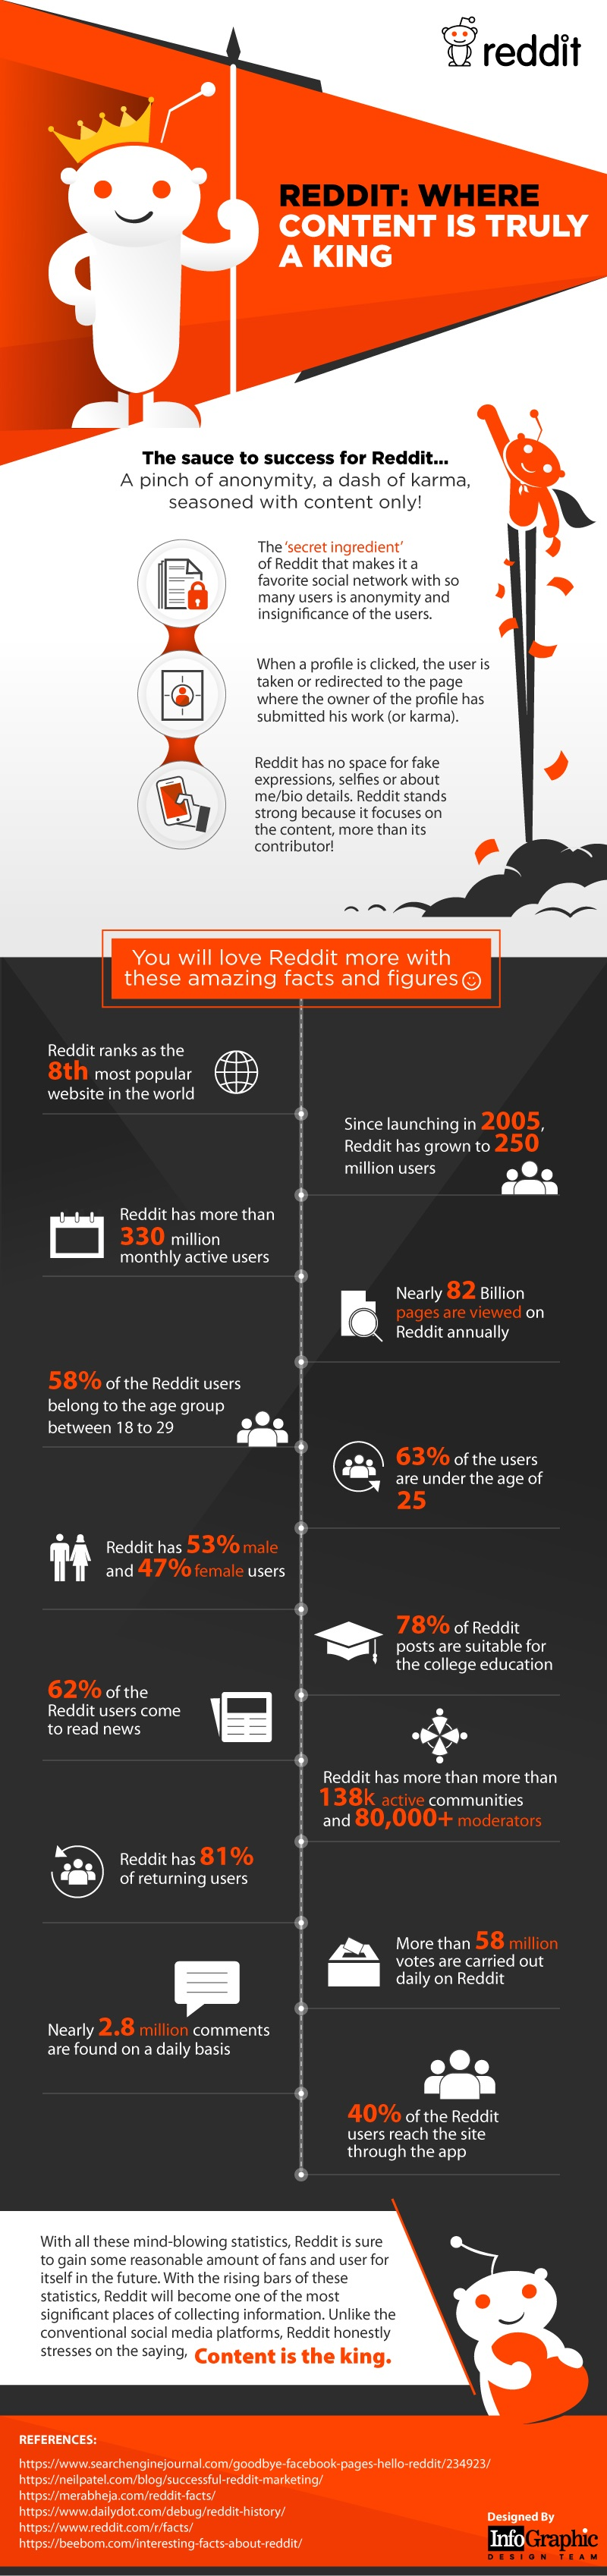 14 Fascinating Facts and Statistics About Reddit - #infographic